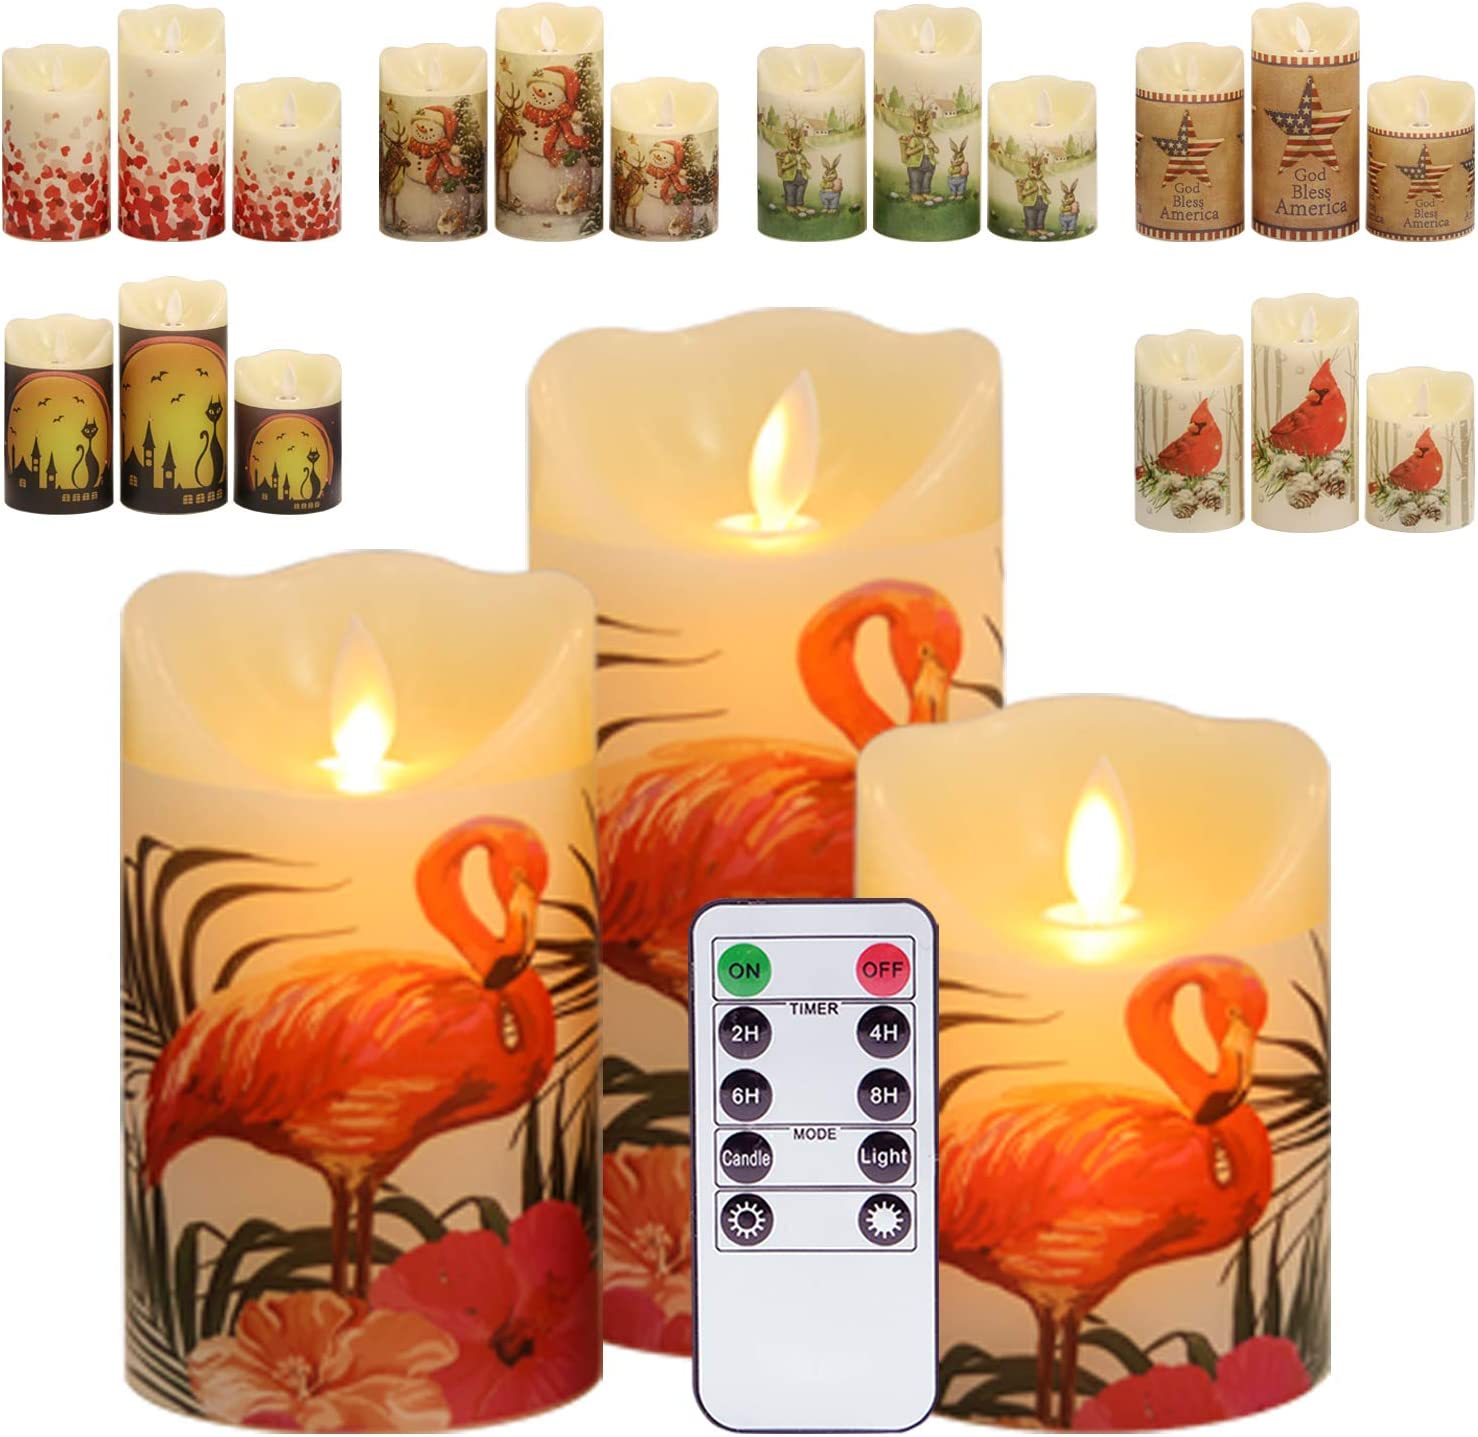 """Eldnacele Snowman Christmas Deco Flameless Flickering Candles with Automatical Daily Cycle Timer D3/"""" x H 4/"""" 5/"""" 6/"""" White Battery-Operated LED Pillar Candles Snowman Decals 3 Pack Snowman"""